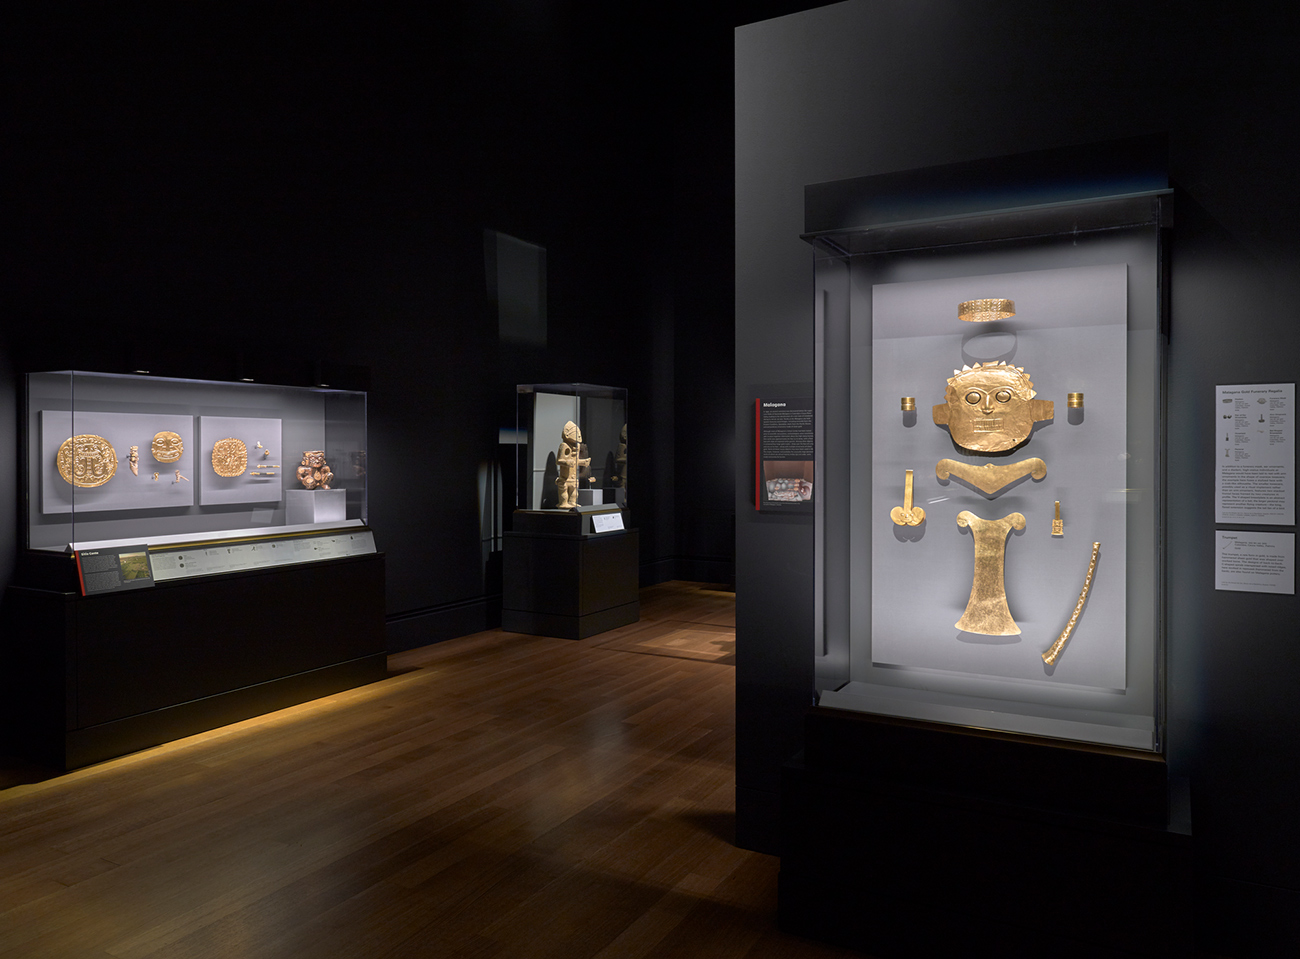 Installation view of Golden Kingdoms featuring golden reliefs dramatically lit in a dark room.